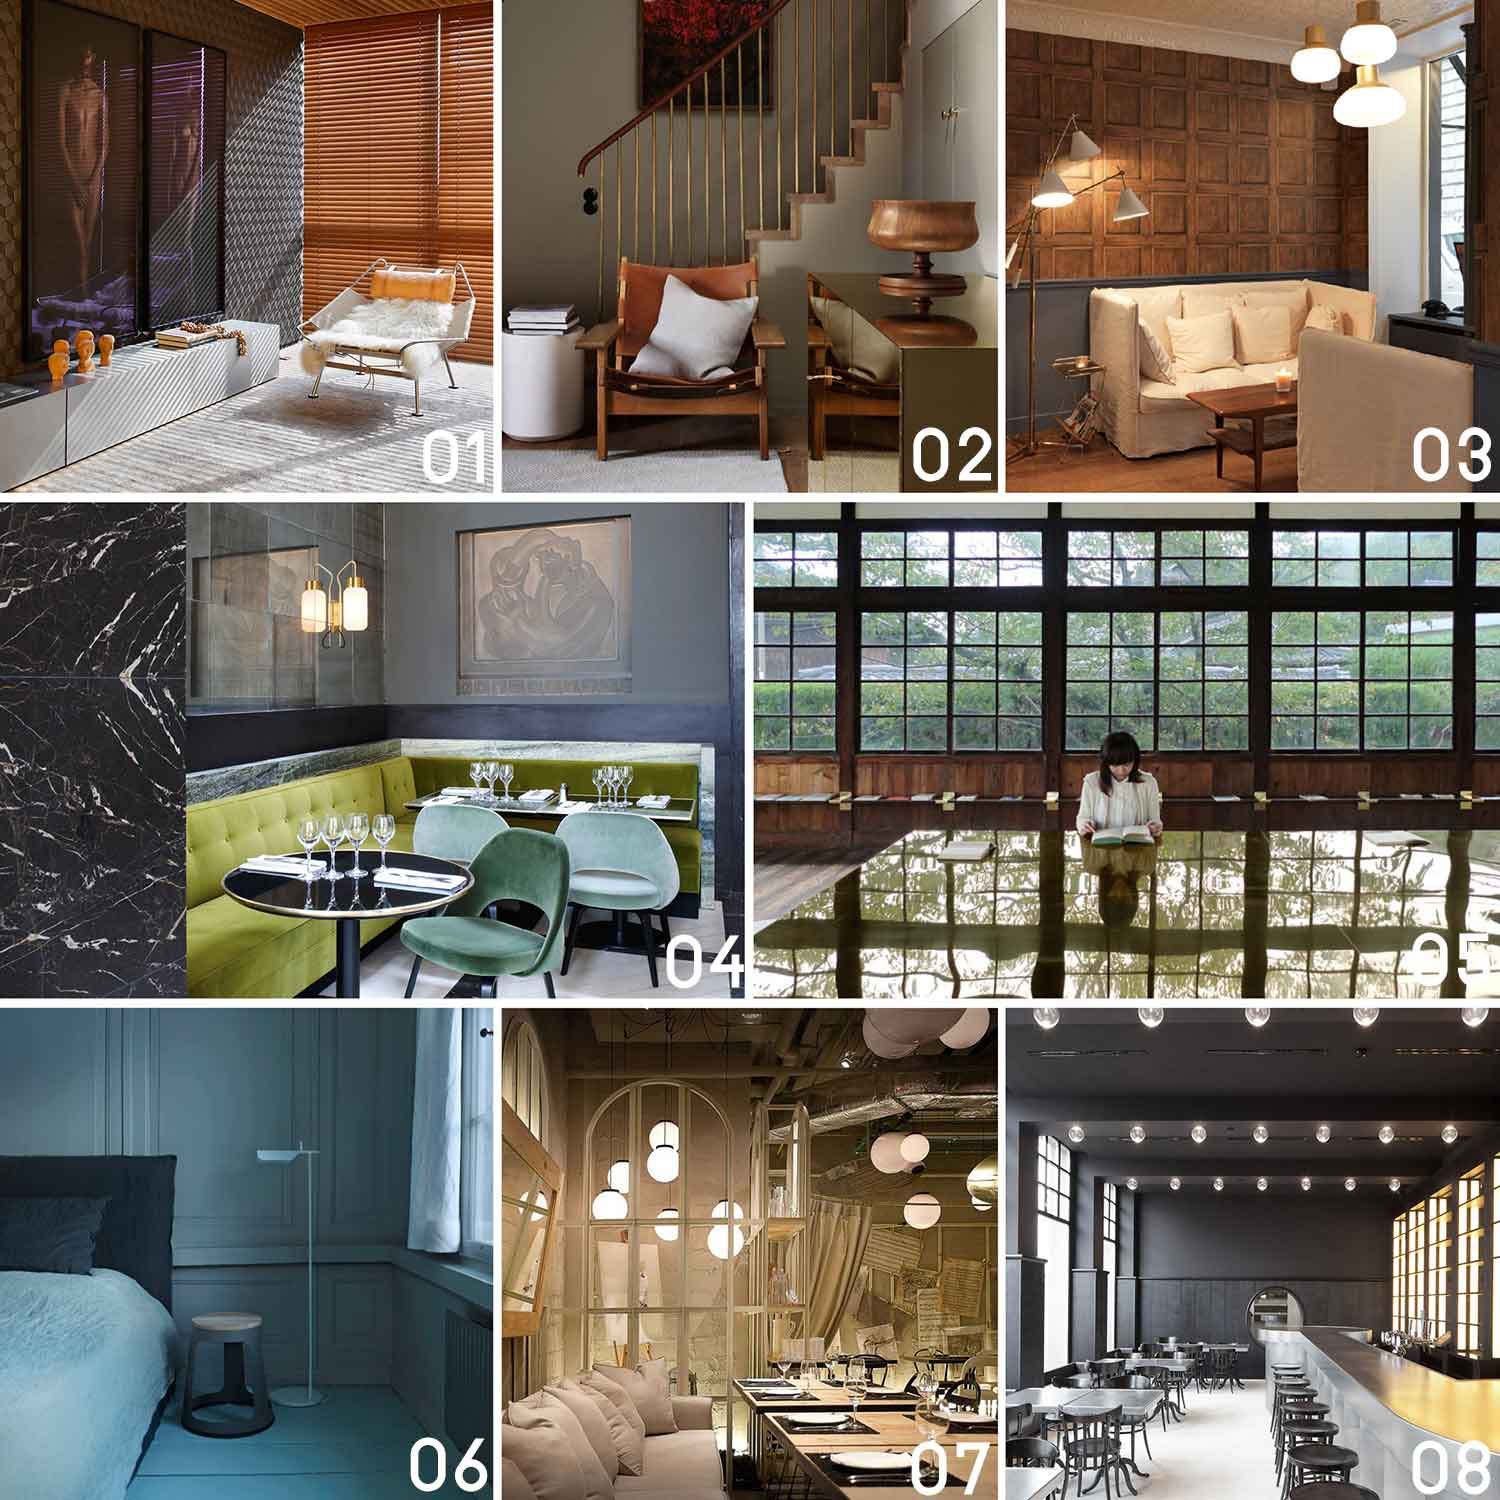 Hospitality, Retail and Commercial Interior Design | 2013 Archive.